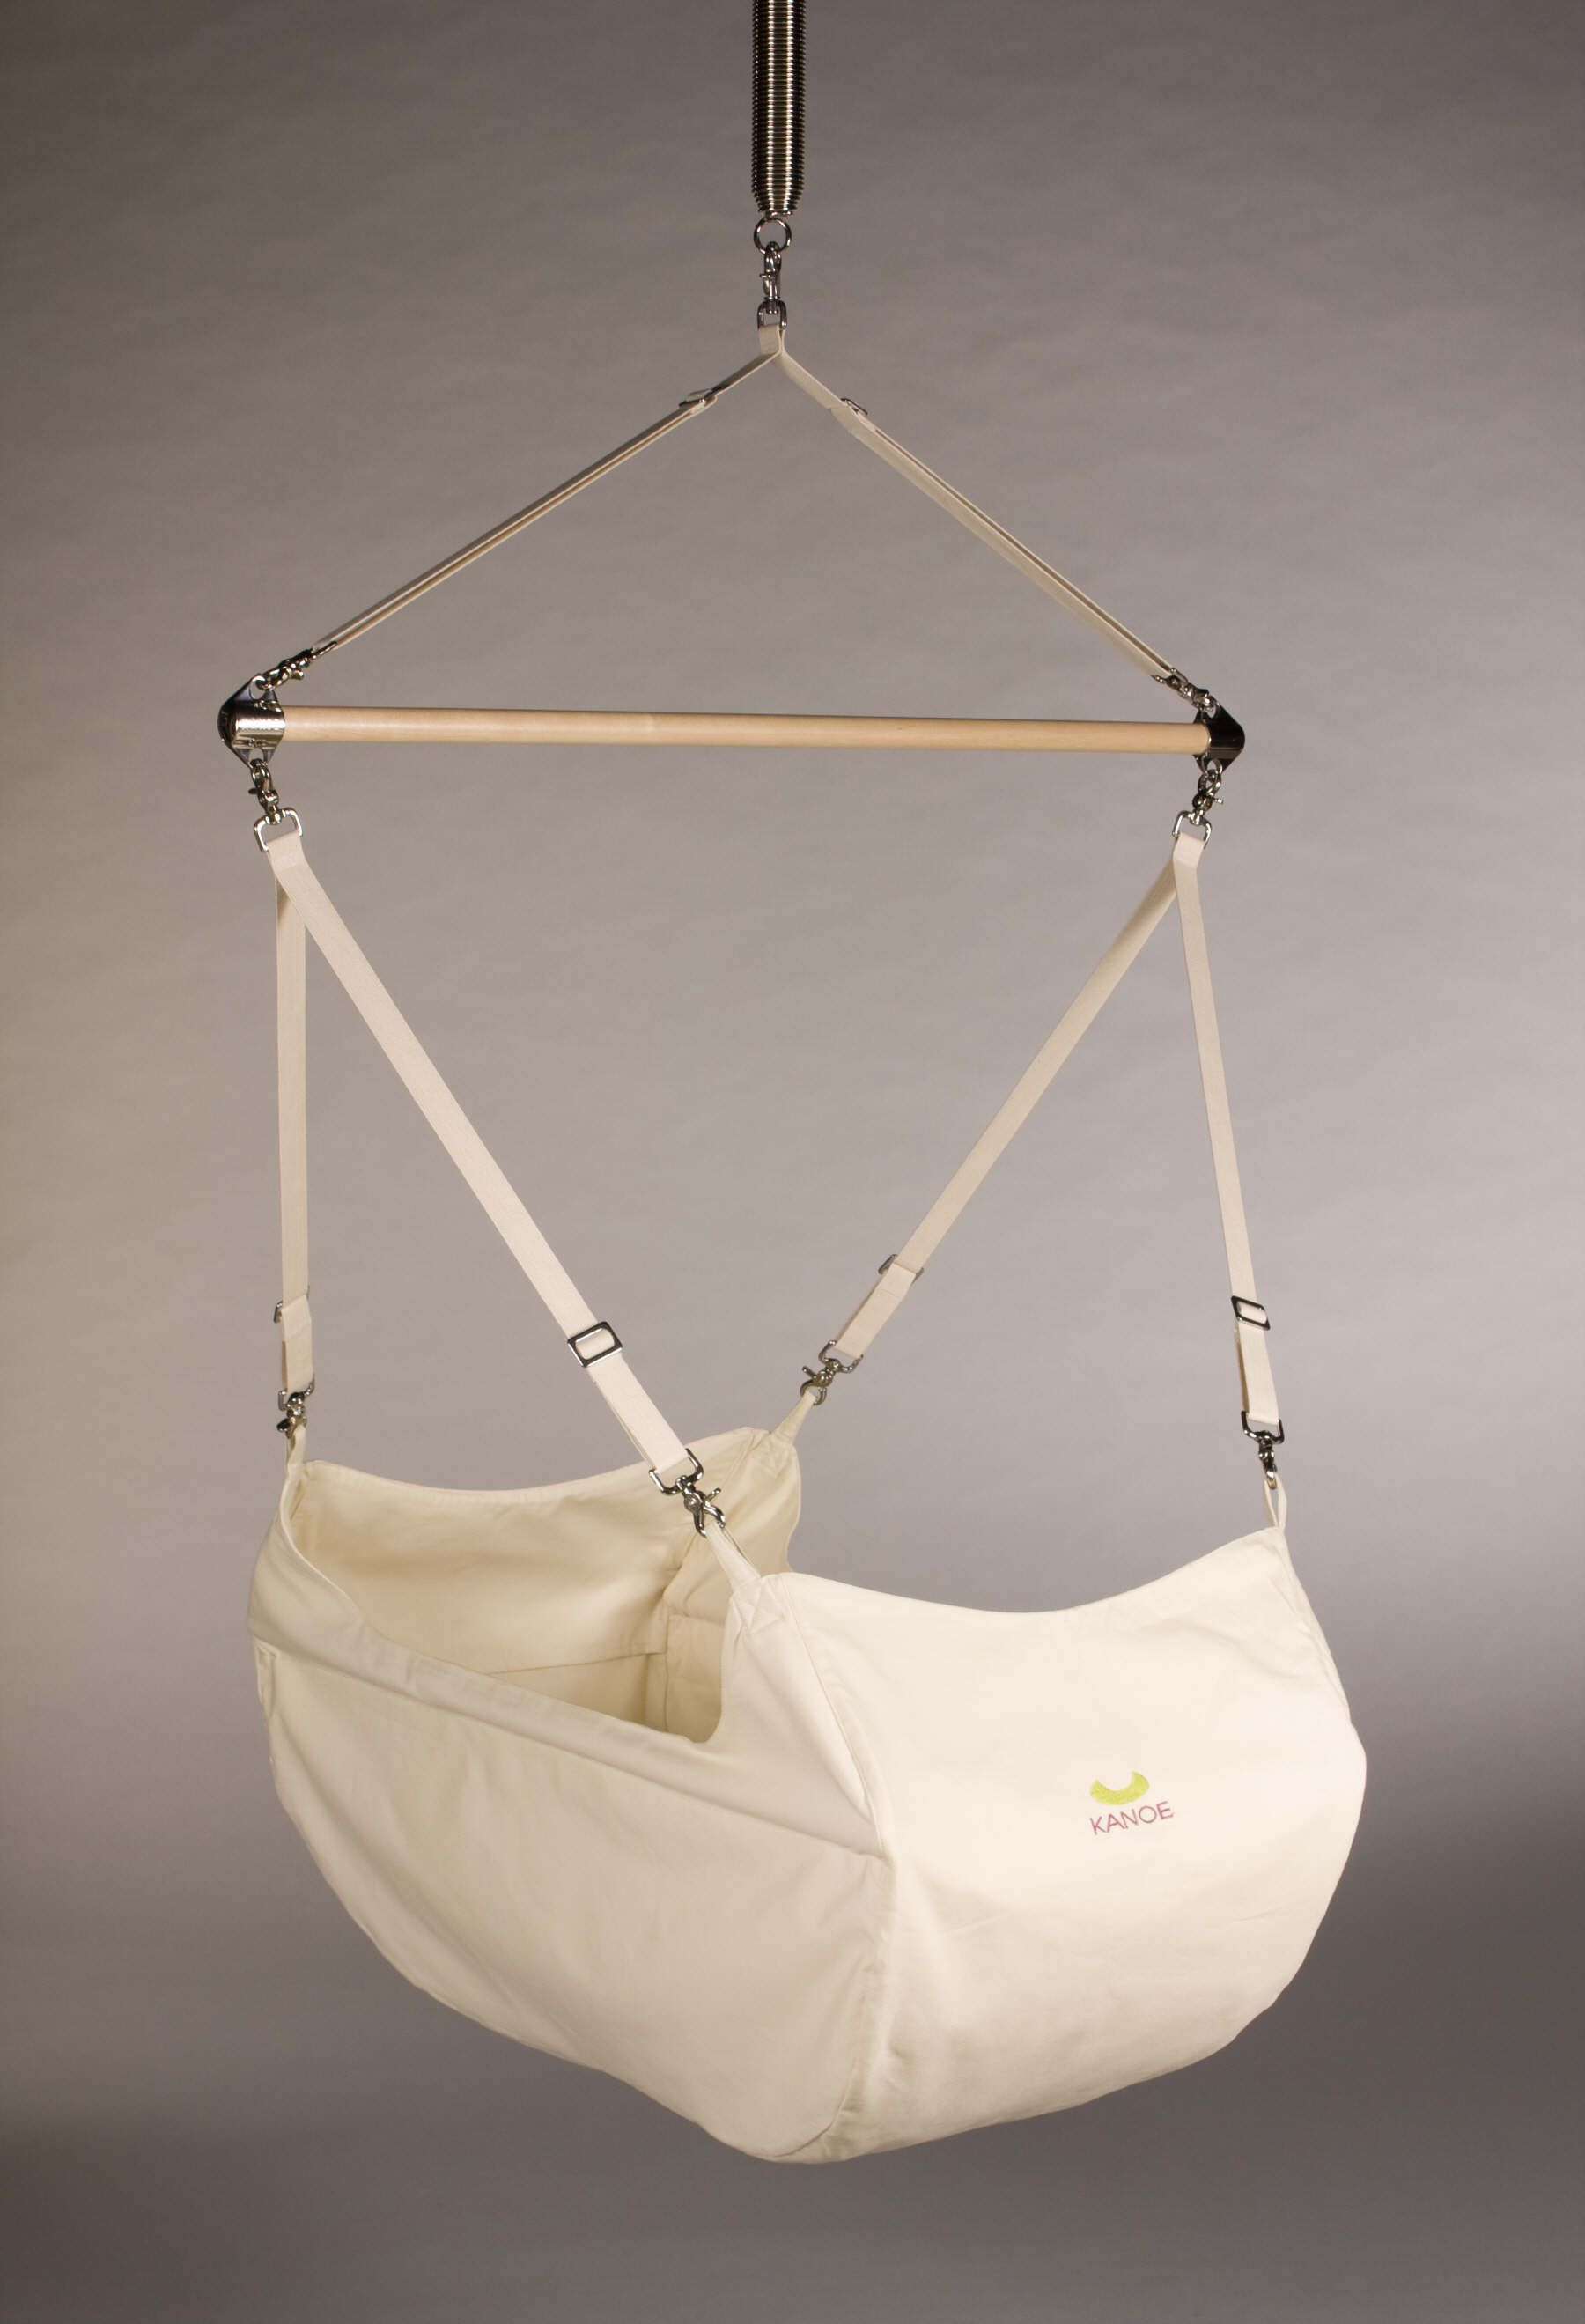 Baby bed ebay india - Kanoe Baby Hammock I Got One Of These From Ebay I Ve Read